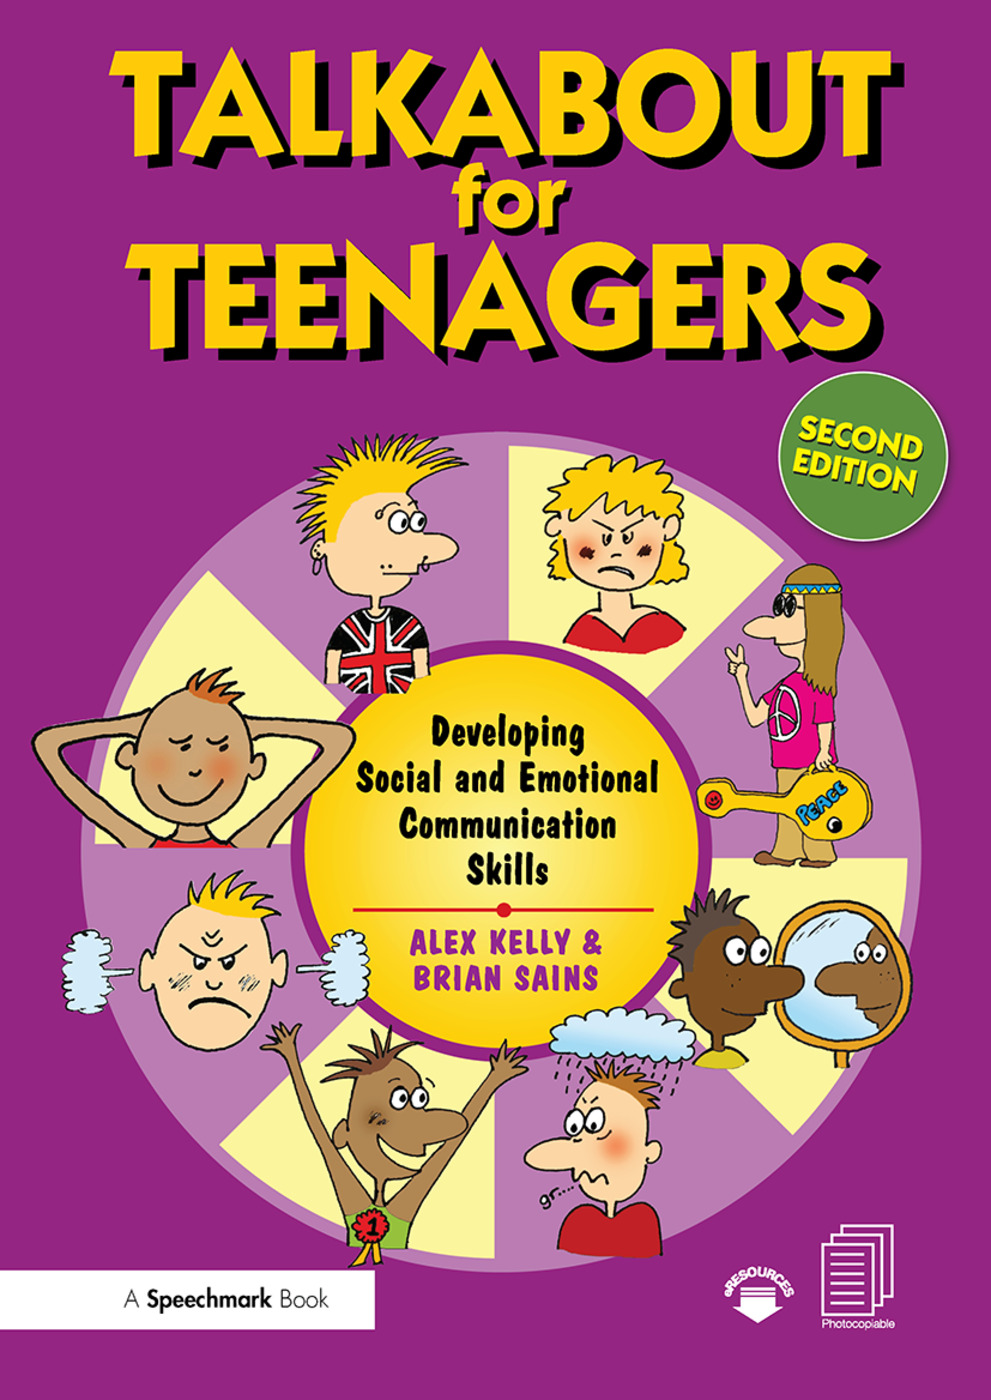 Talkabout for Teenagers: Developing Social and Emotional Communication Skills book cover